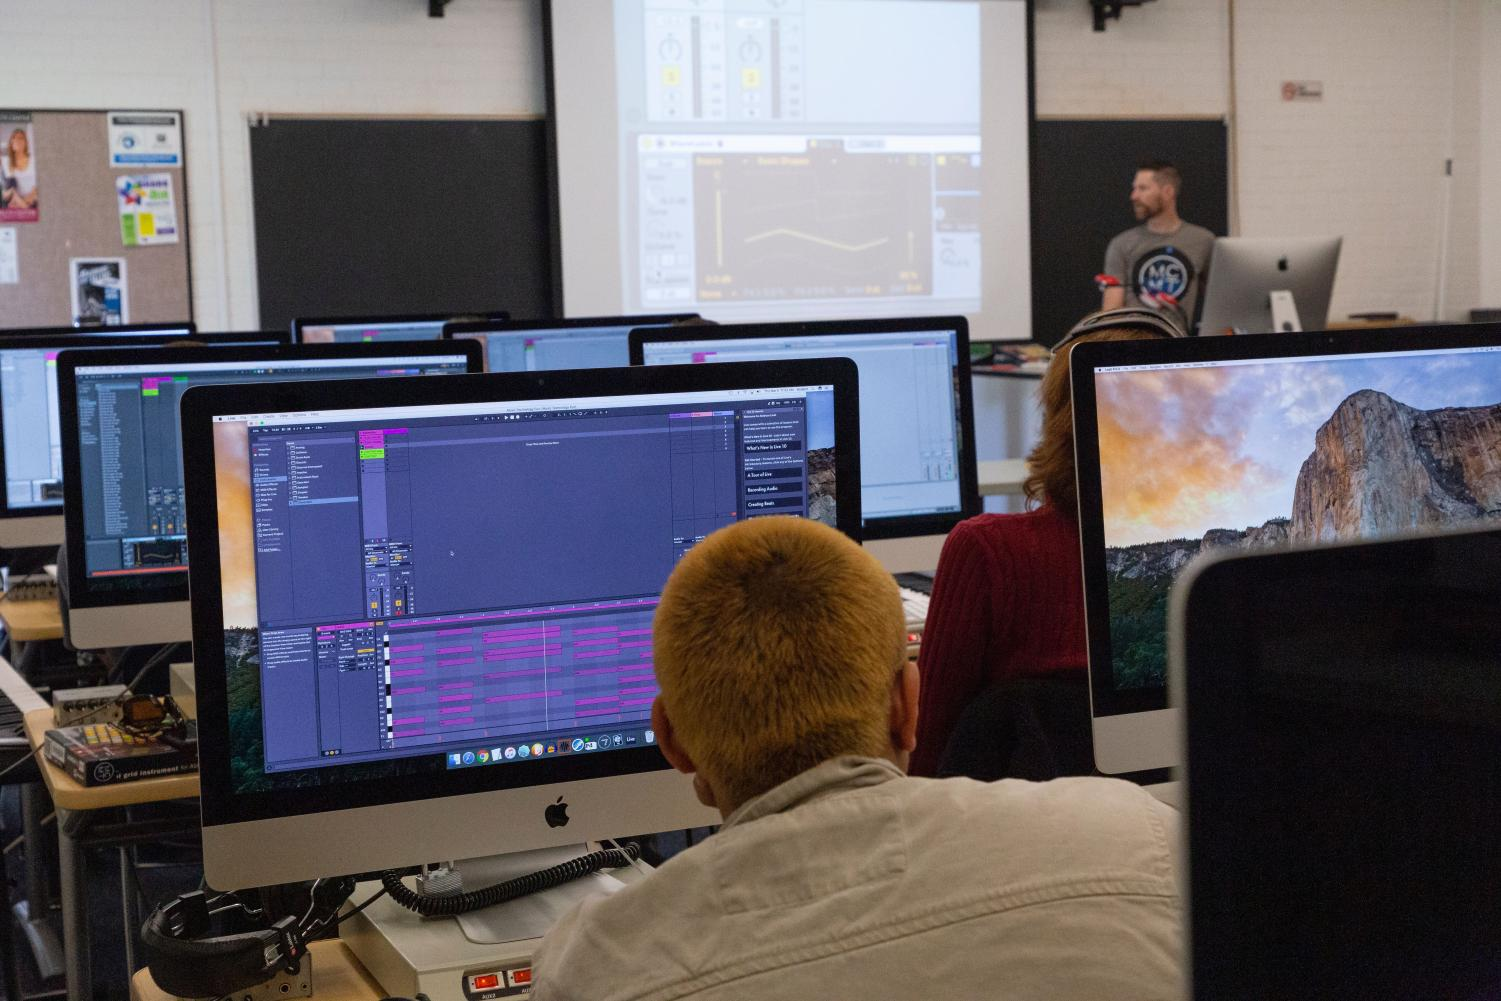 Professor Nathan Bowen demonstrates how to use the software Ableton Live during class on Thursday March 5, at Moorpark College.